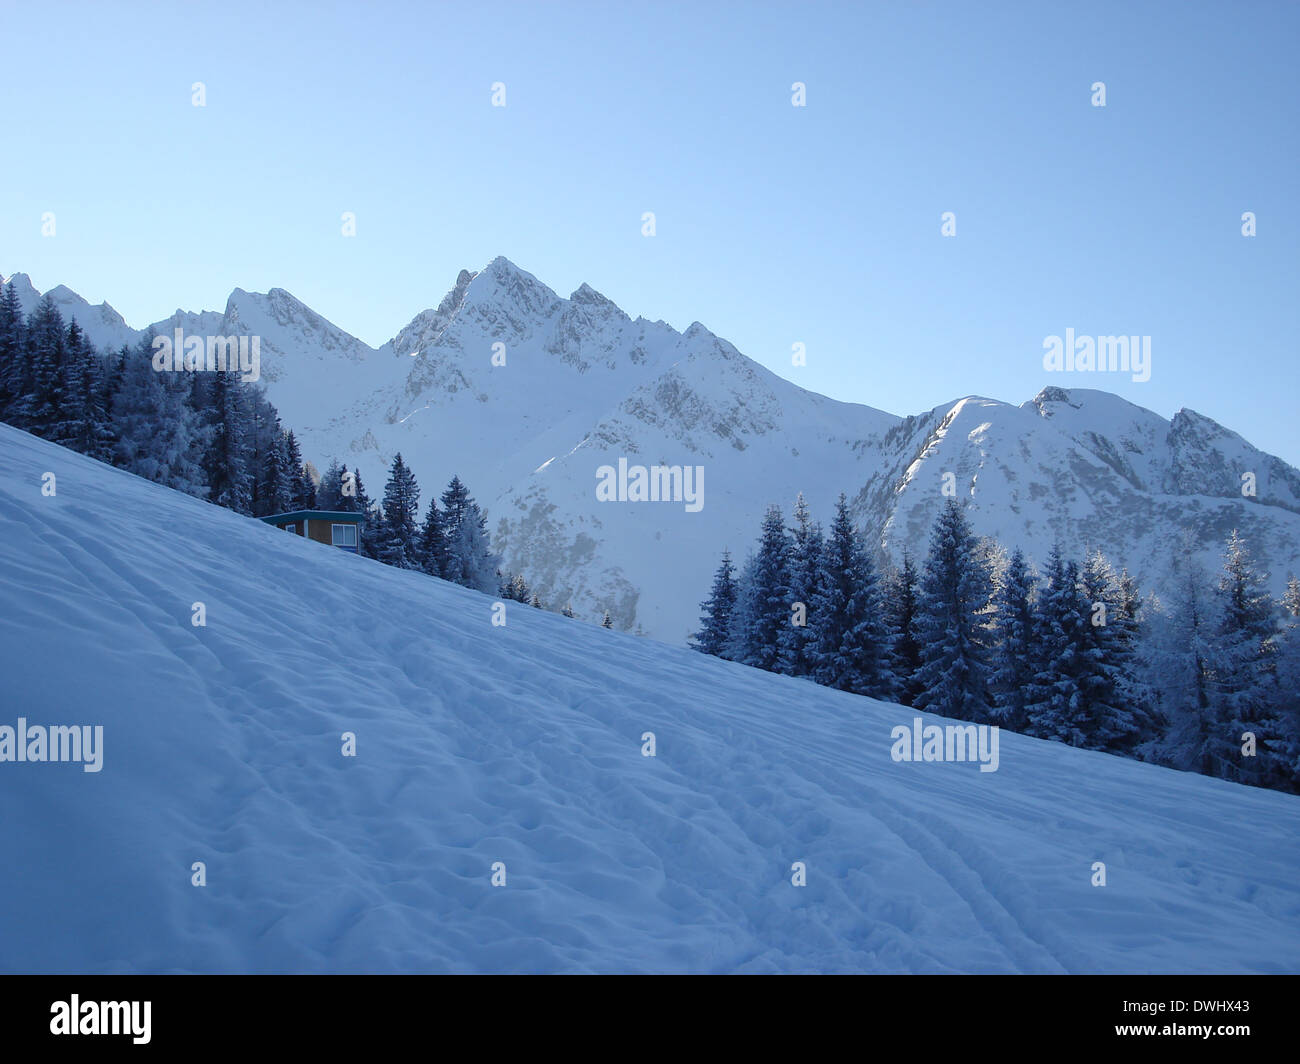 View over the Austrian Alps. - Stock Image